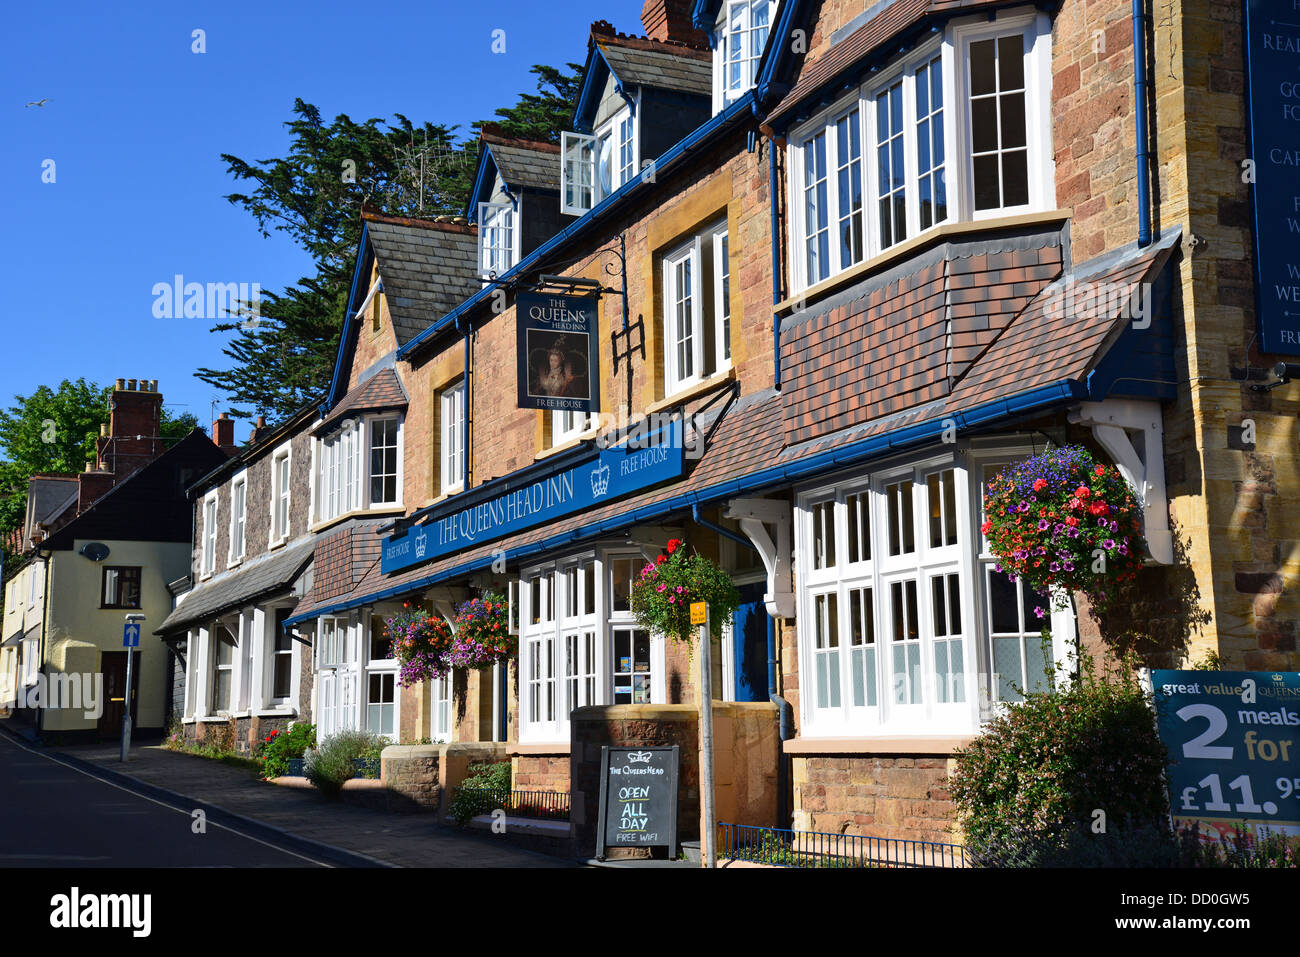 Queens Head Hotel, Holloway Street, Minehead, Somerset, England, United Kingdom - Stock Image